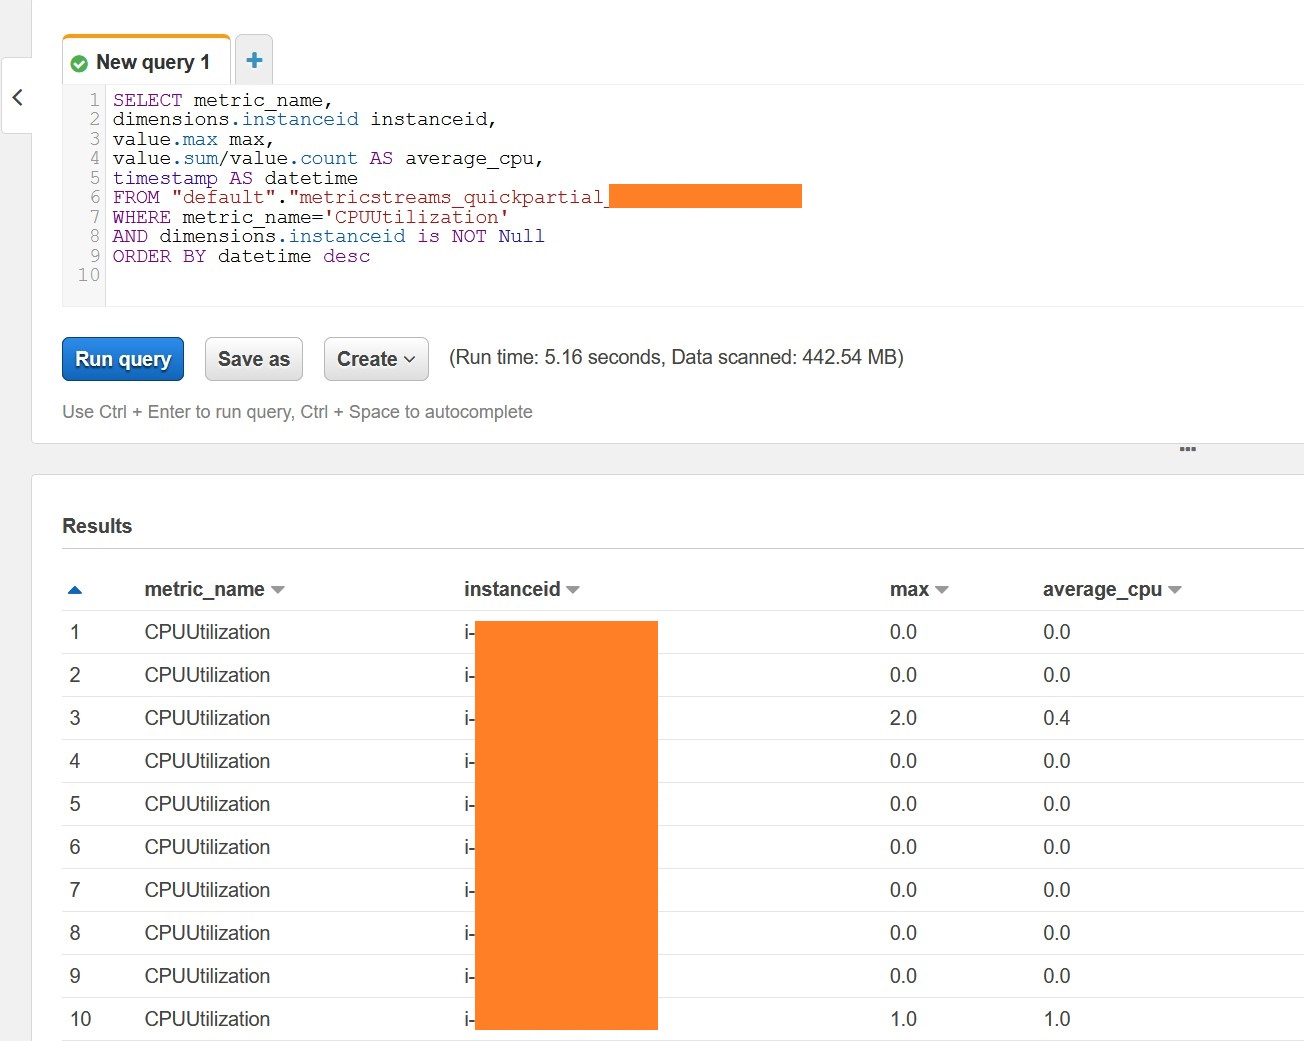 The columns under Results are metric_name, instanceid, max, and average_cpu.